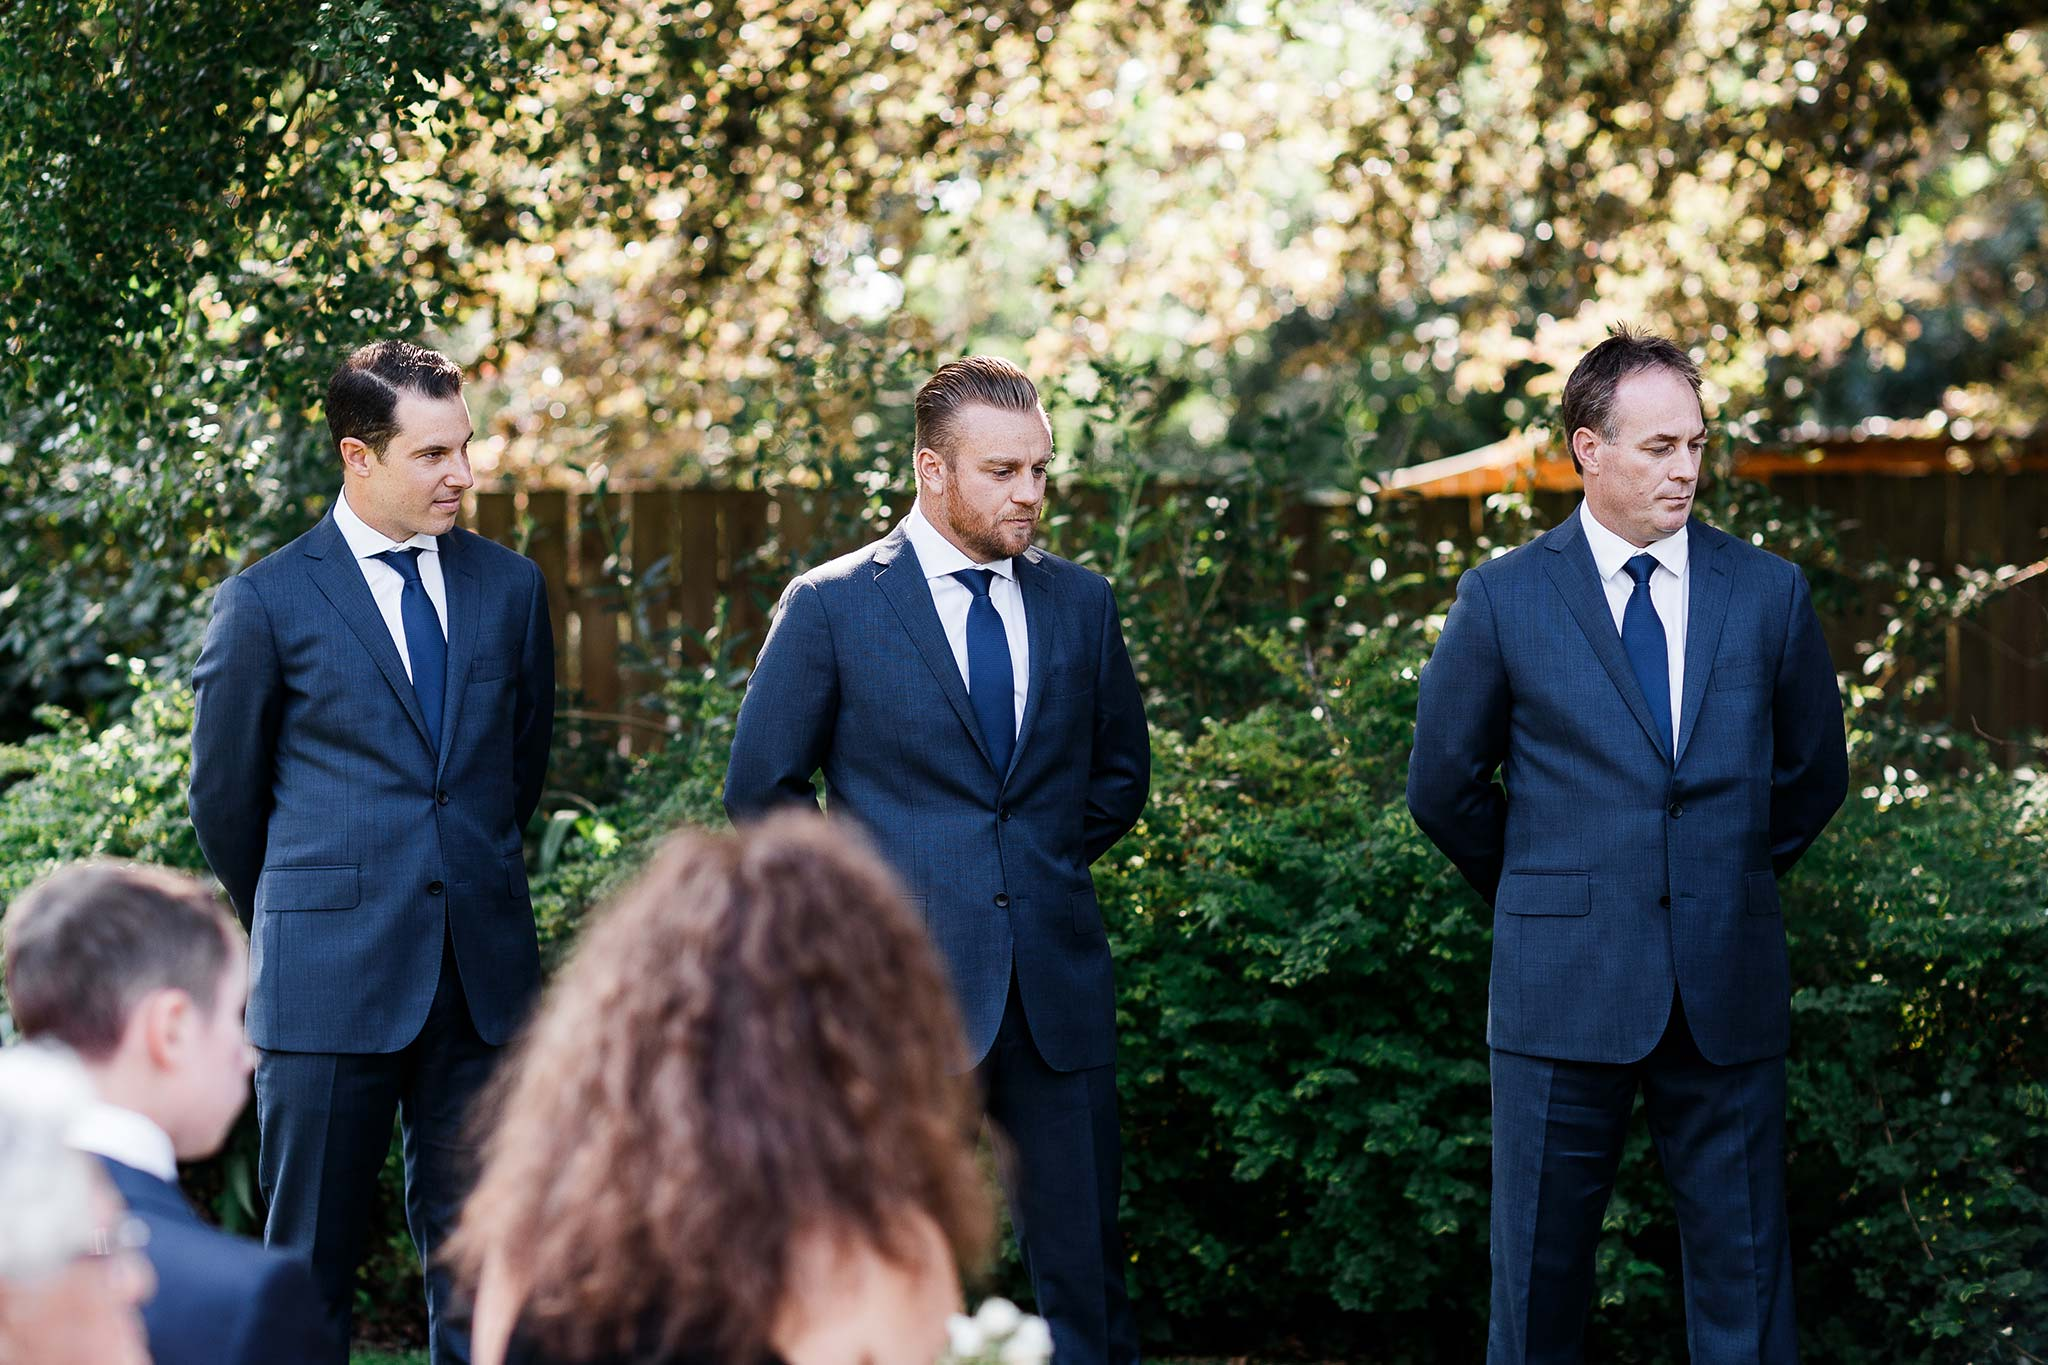 Launceston-Brickendon-barn-Wedding-Photographer-ceremony-bridal-groomsmen